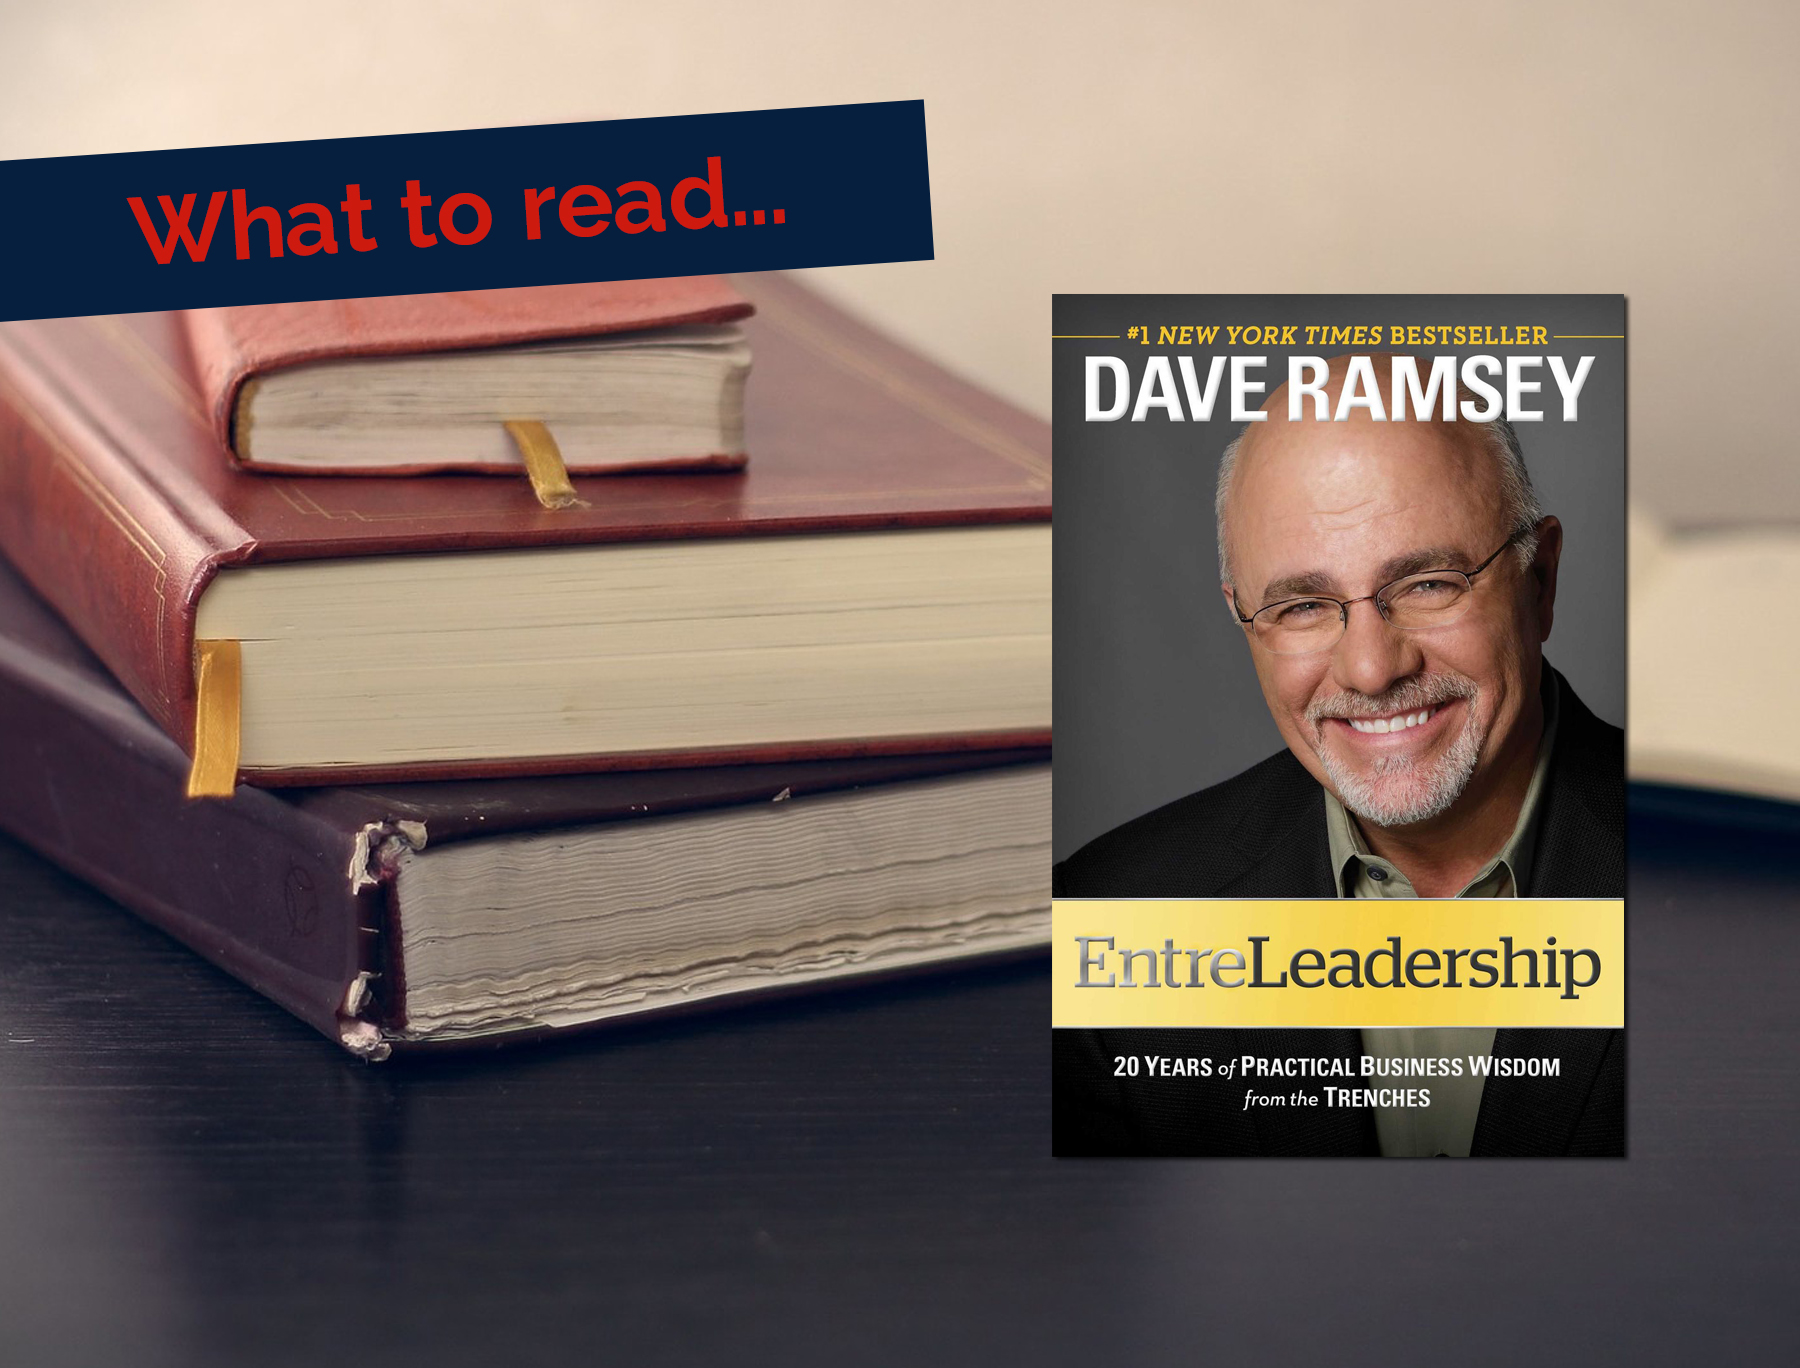 entreleadership-business-book-recommendation